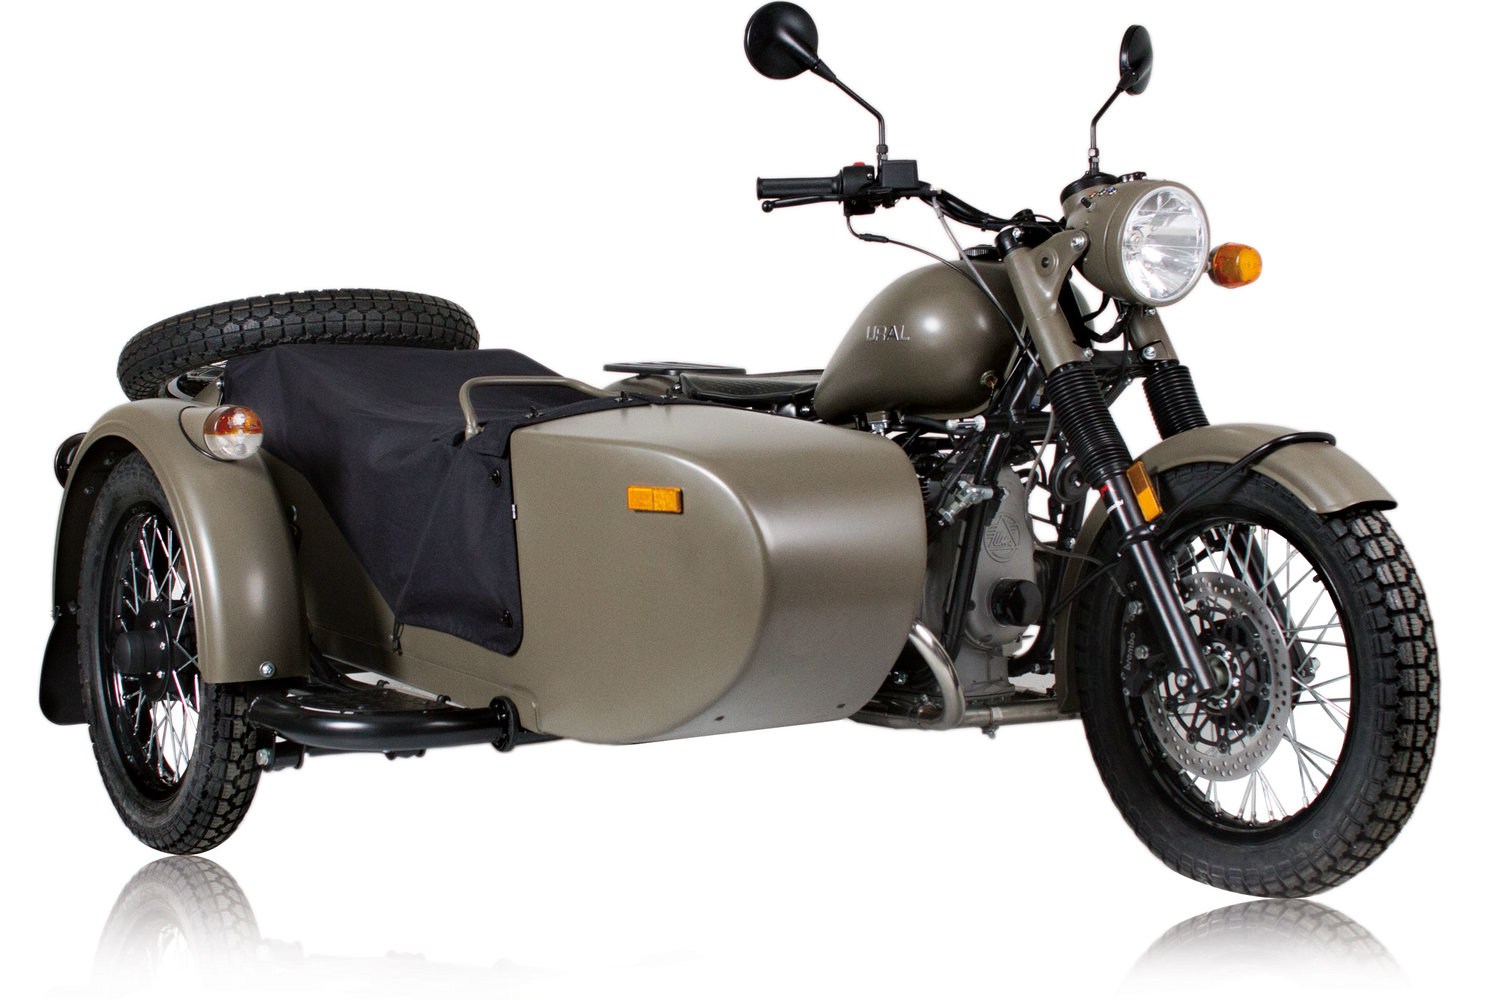 New Ural M70 in Boxborough